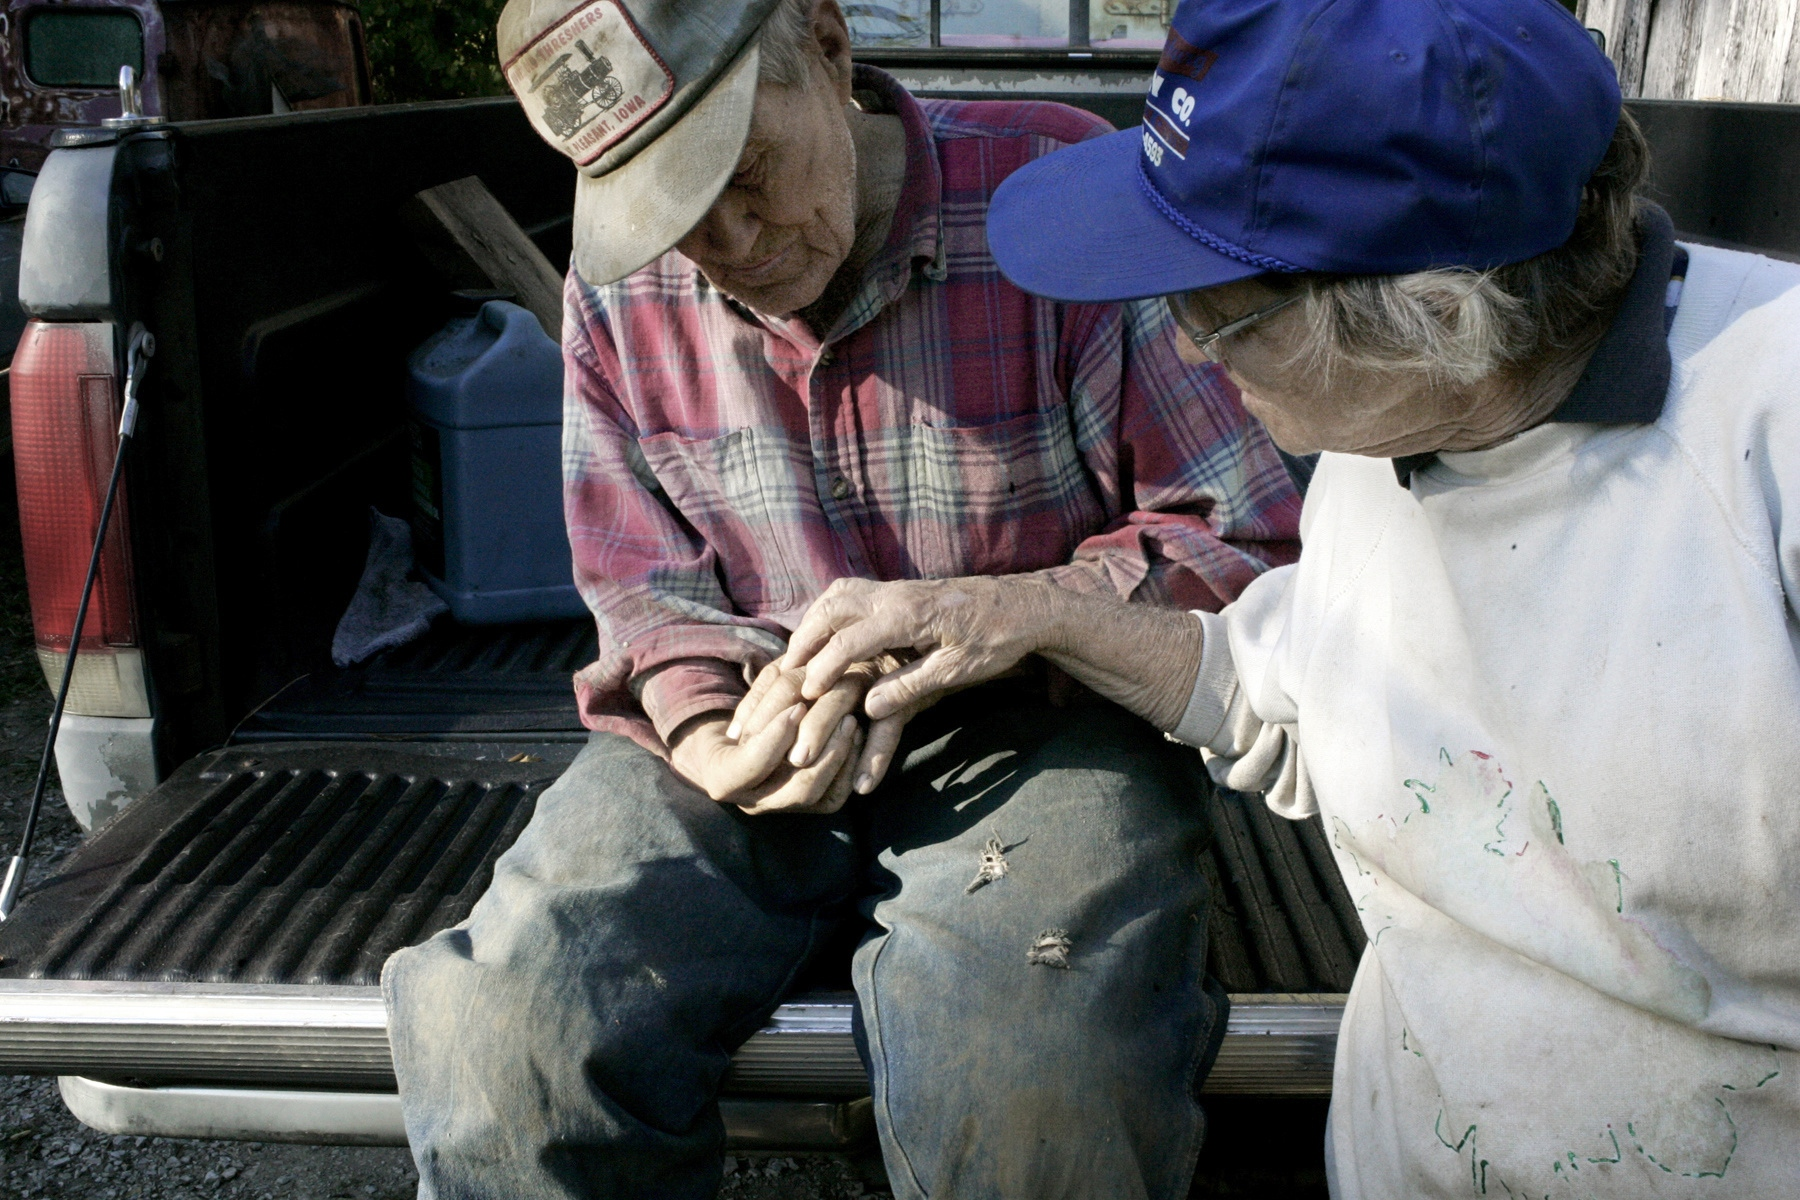 Louise Buntain inspects the hand of her husband Bert. Bert injured his hand while welding on his truck.